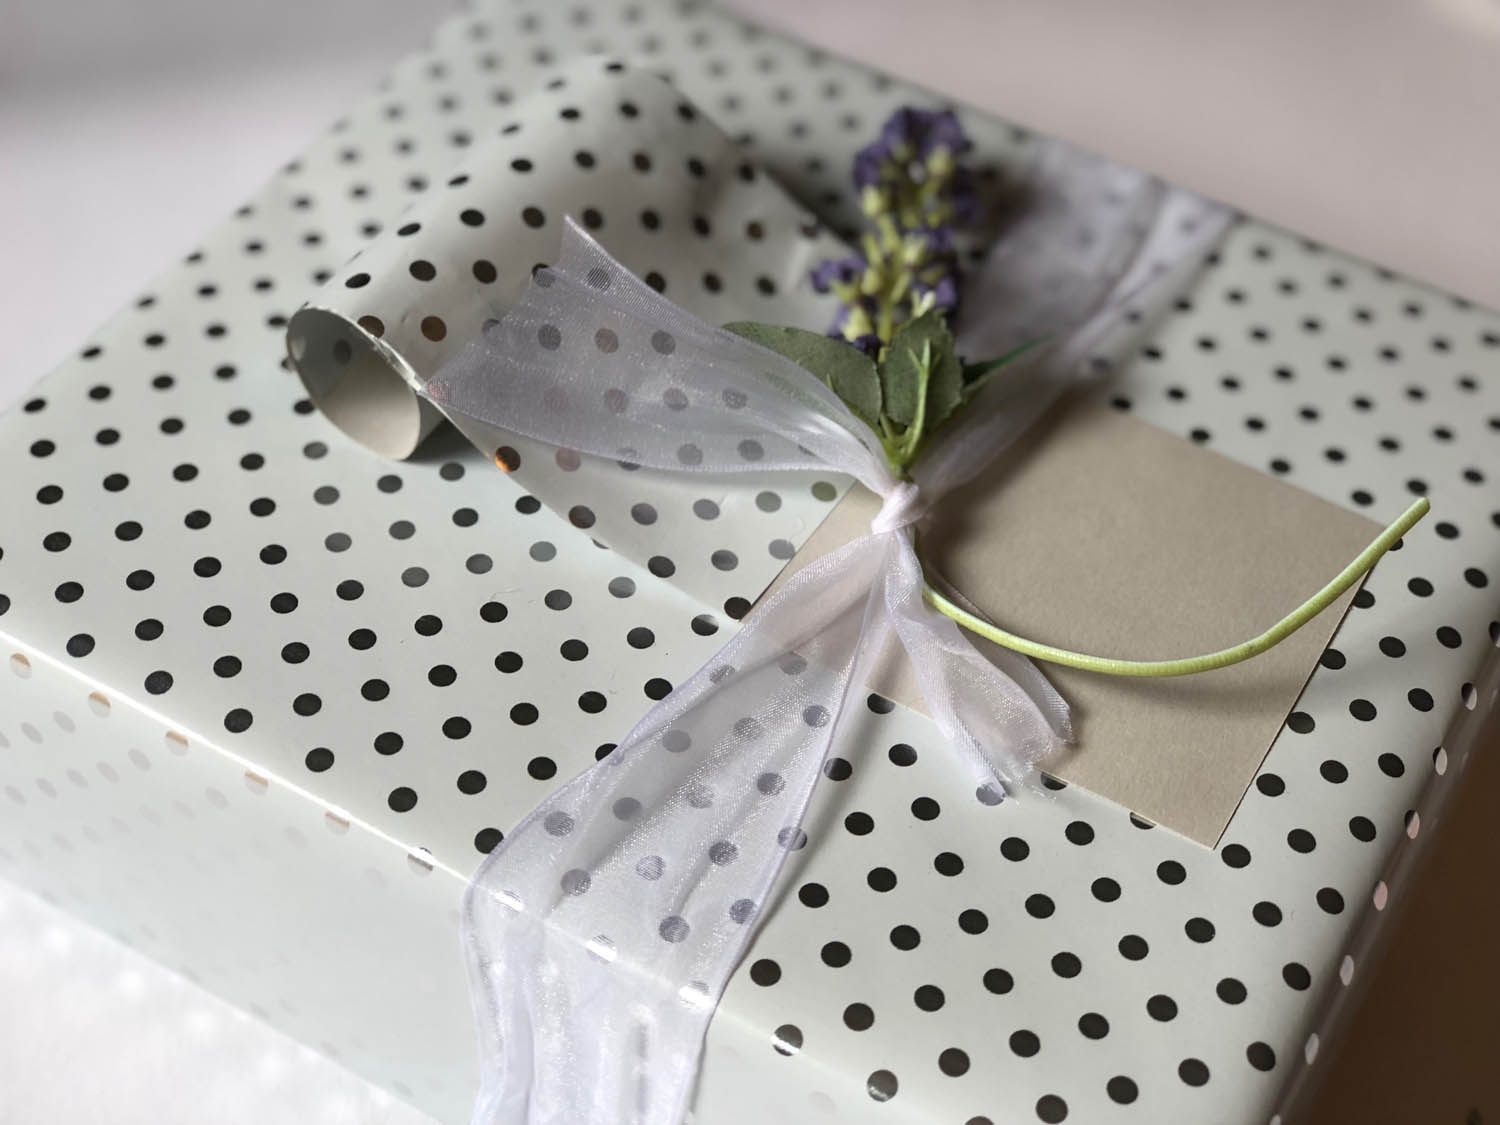 elegant gift wrap for a wedding present with paper scroll and floral pic embellishment